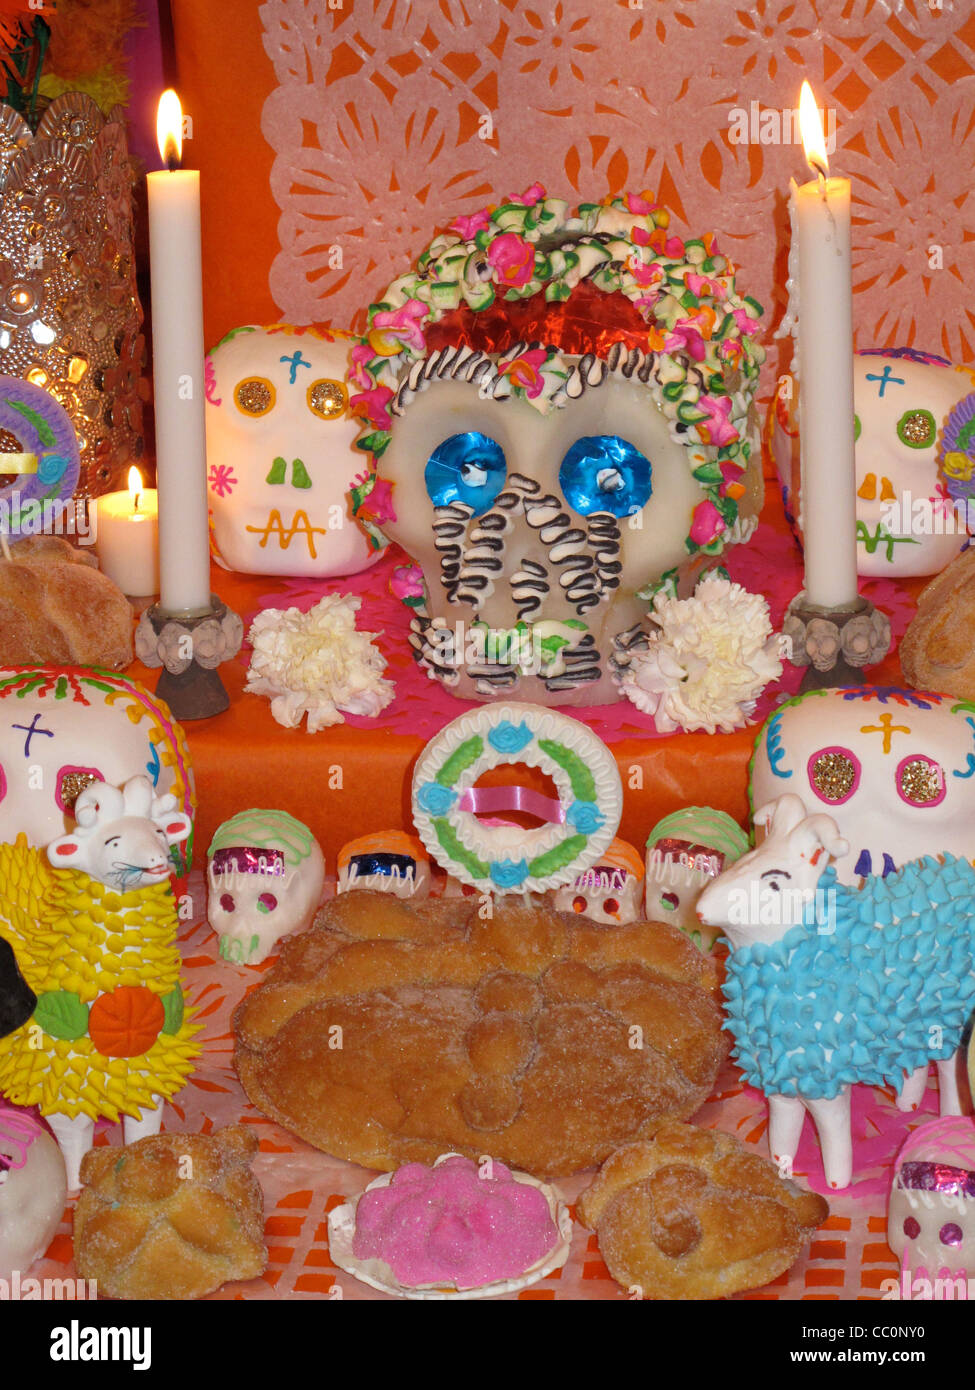 Dia de Los Muertos Altar from Mexico with Sugar Skull and Candles - Stock Image